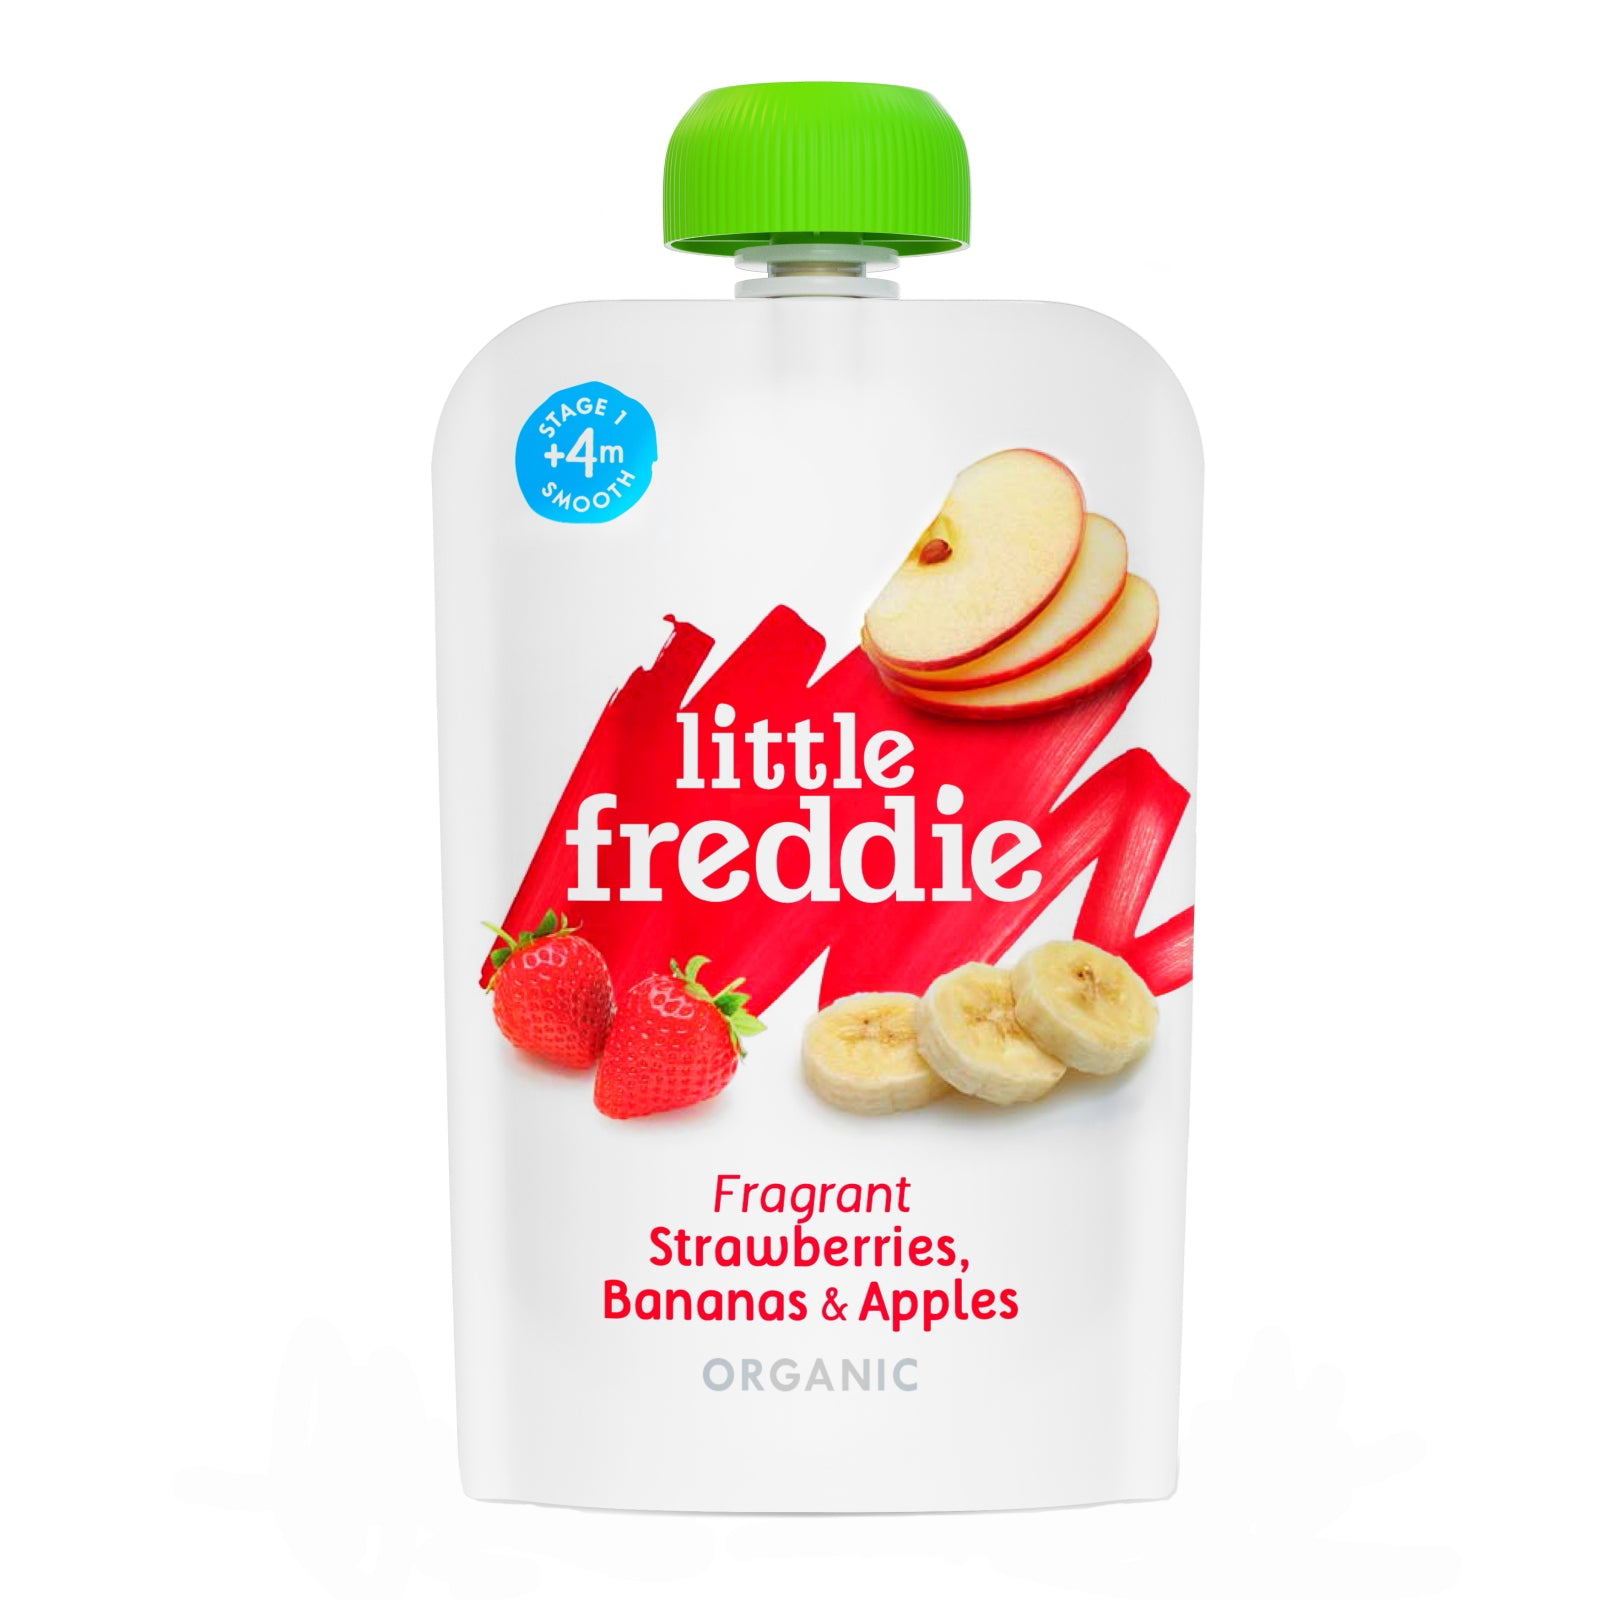 Little Freddie Fruit & Vegetable - Fragrant  Strawberries , Bananas & Apples - 100g